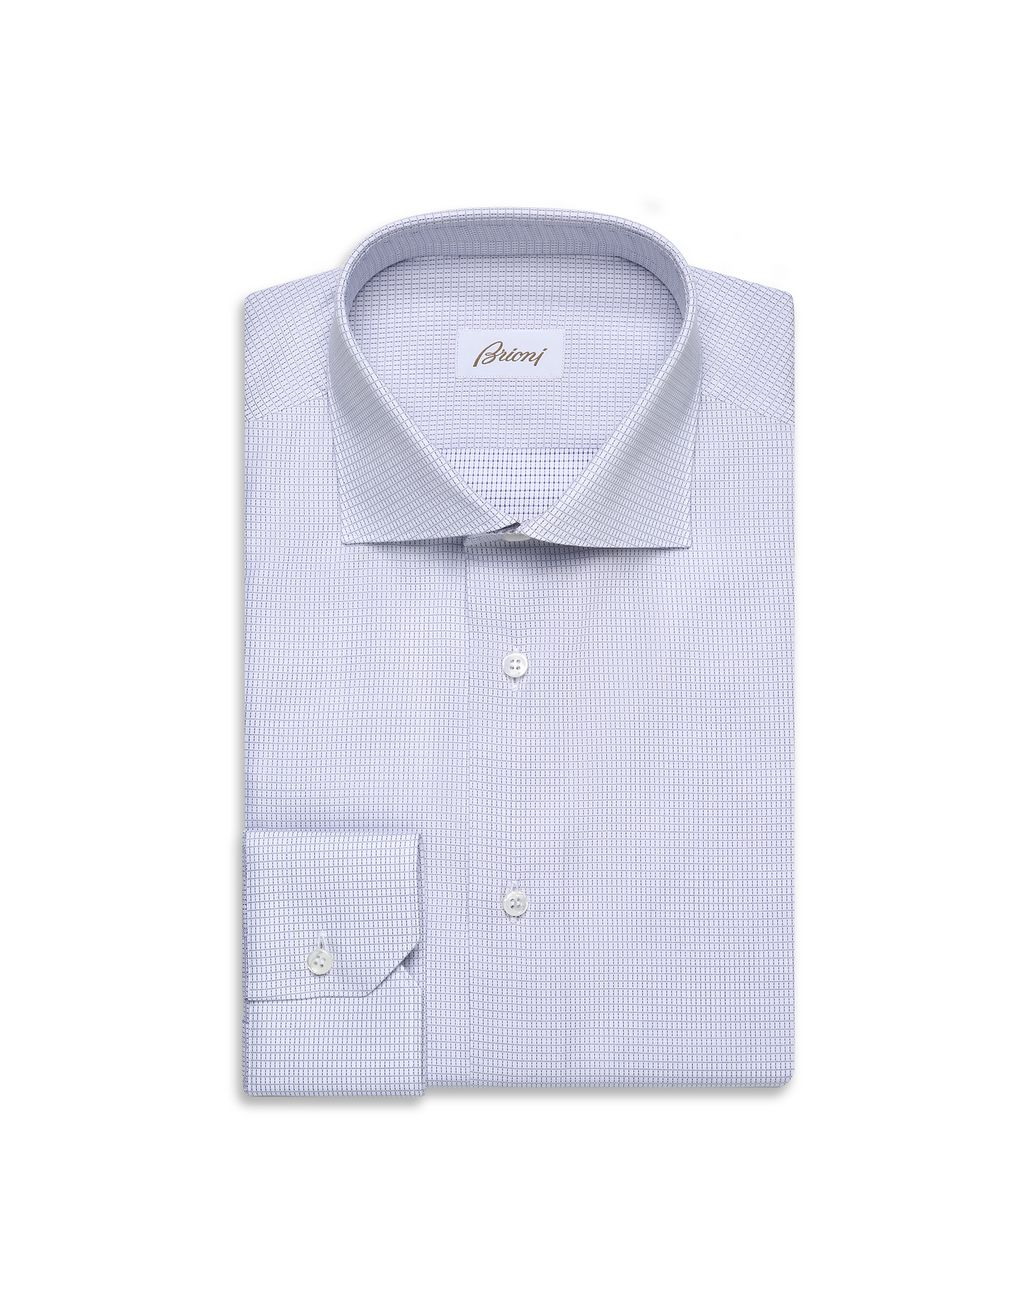 BRIONI Bluette and White Micro-Designed Formal Shirt Formal shirt [*** pickupInStoreShippingNotGuaranteed_info ***] f